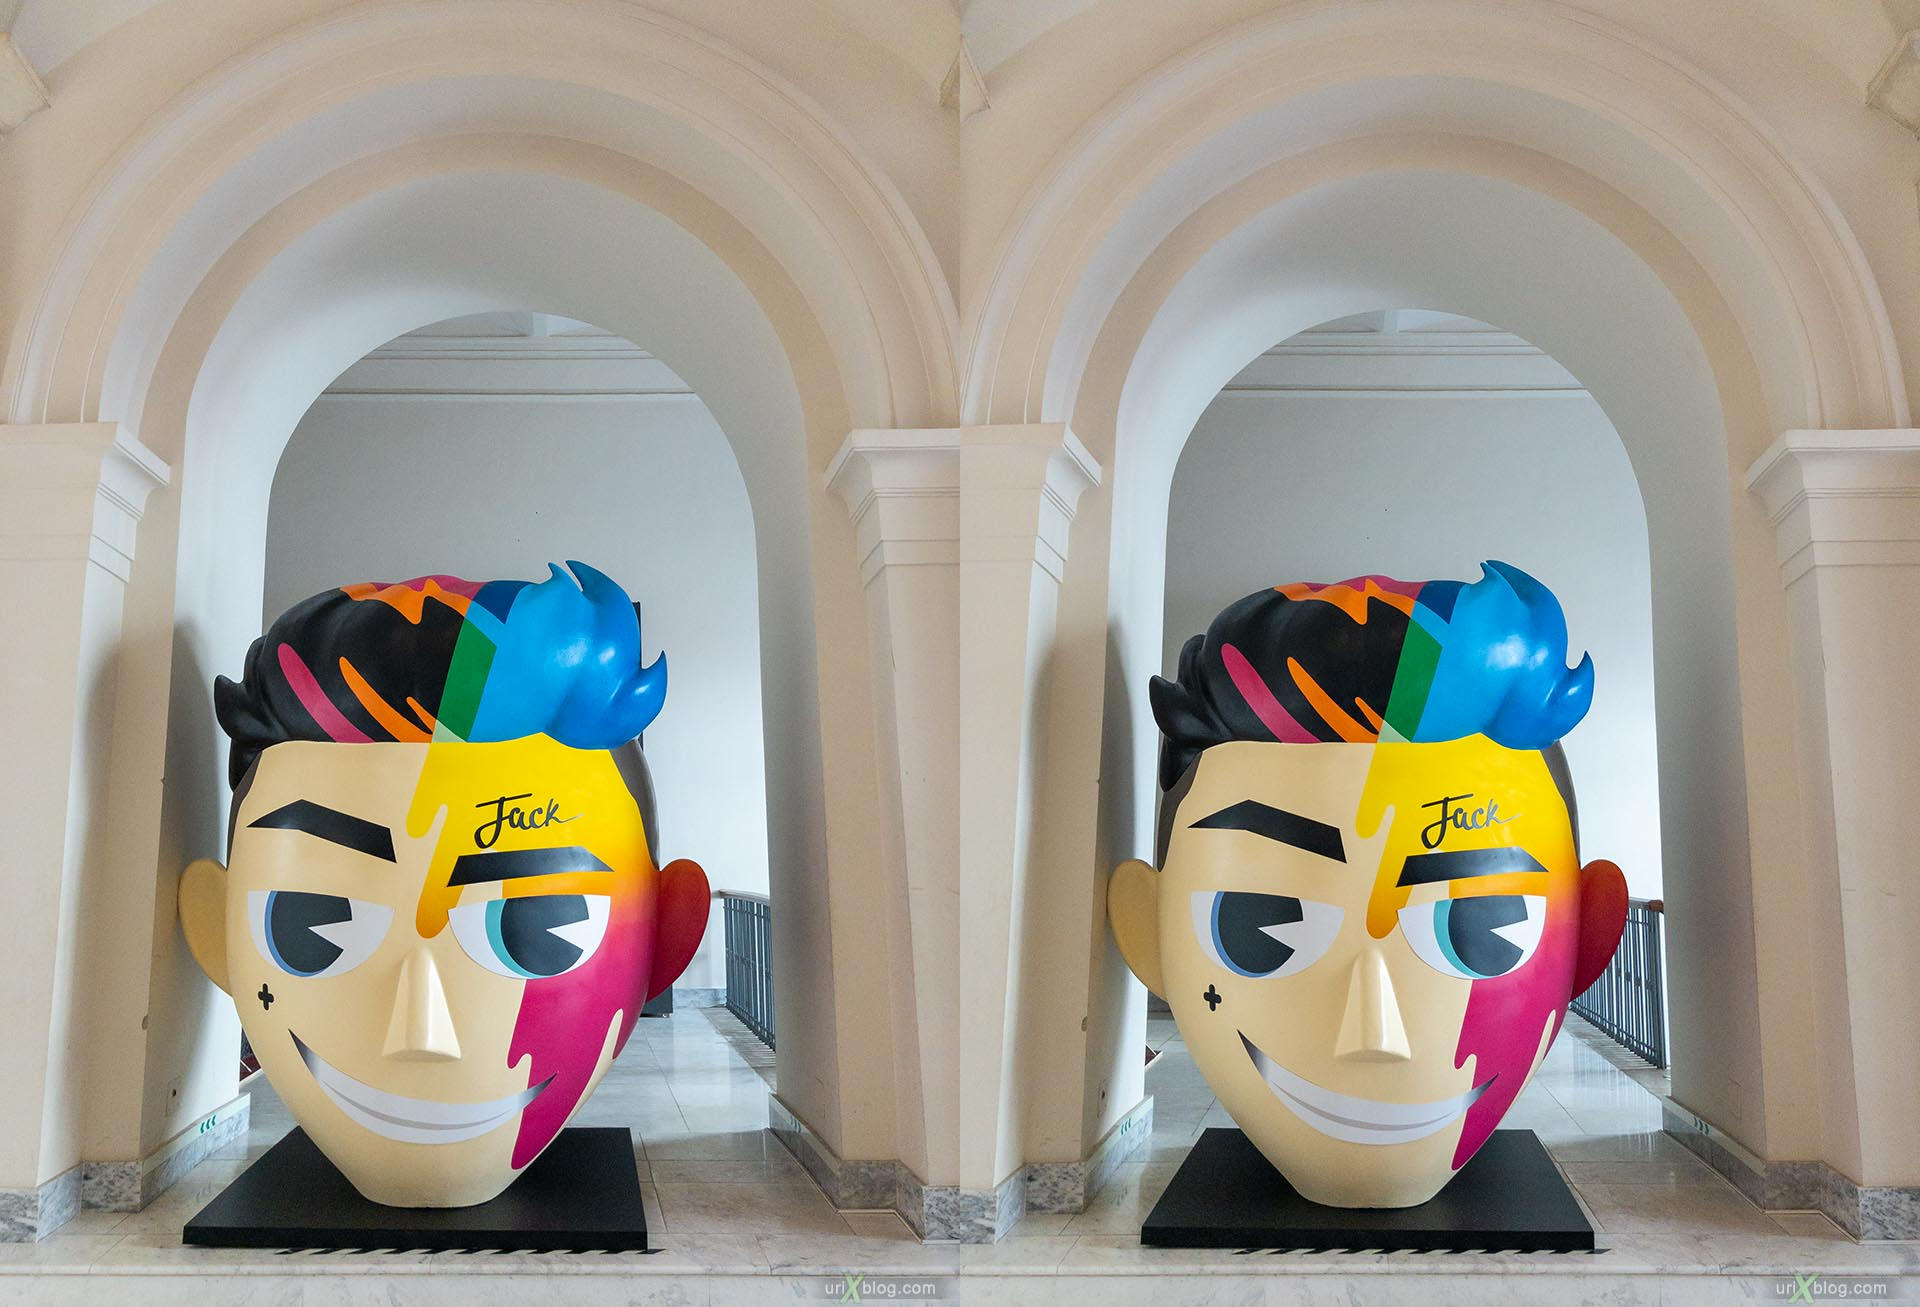 head, jack, exhibition, Russian North, State Historical museum, Moscow, Russia, 3D, stereo pair, cross-eyed, crossview, cross view stereo pair, stereoscopic